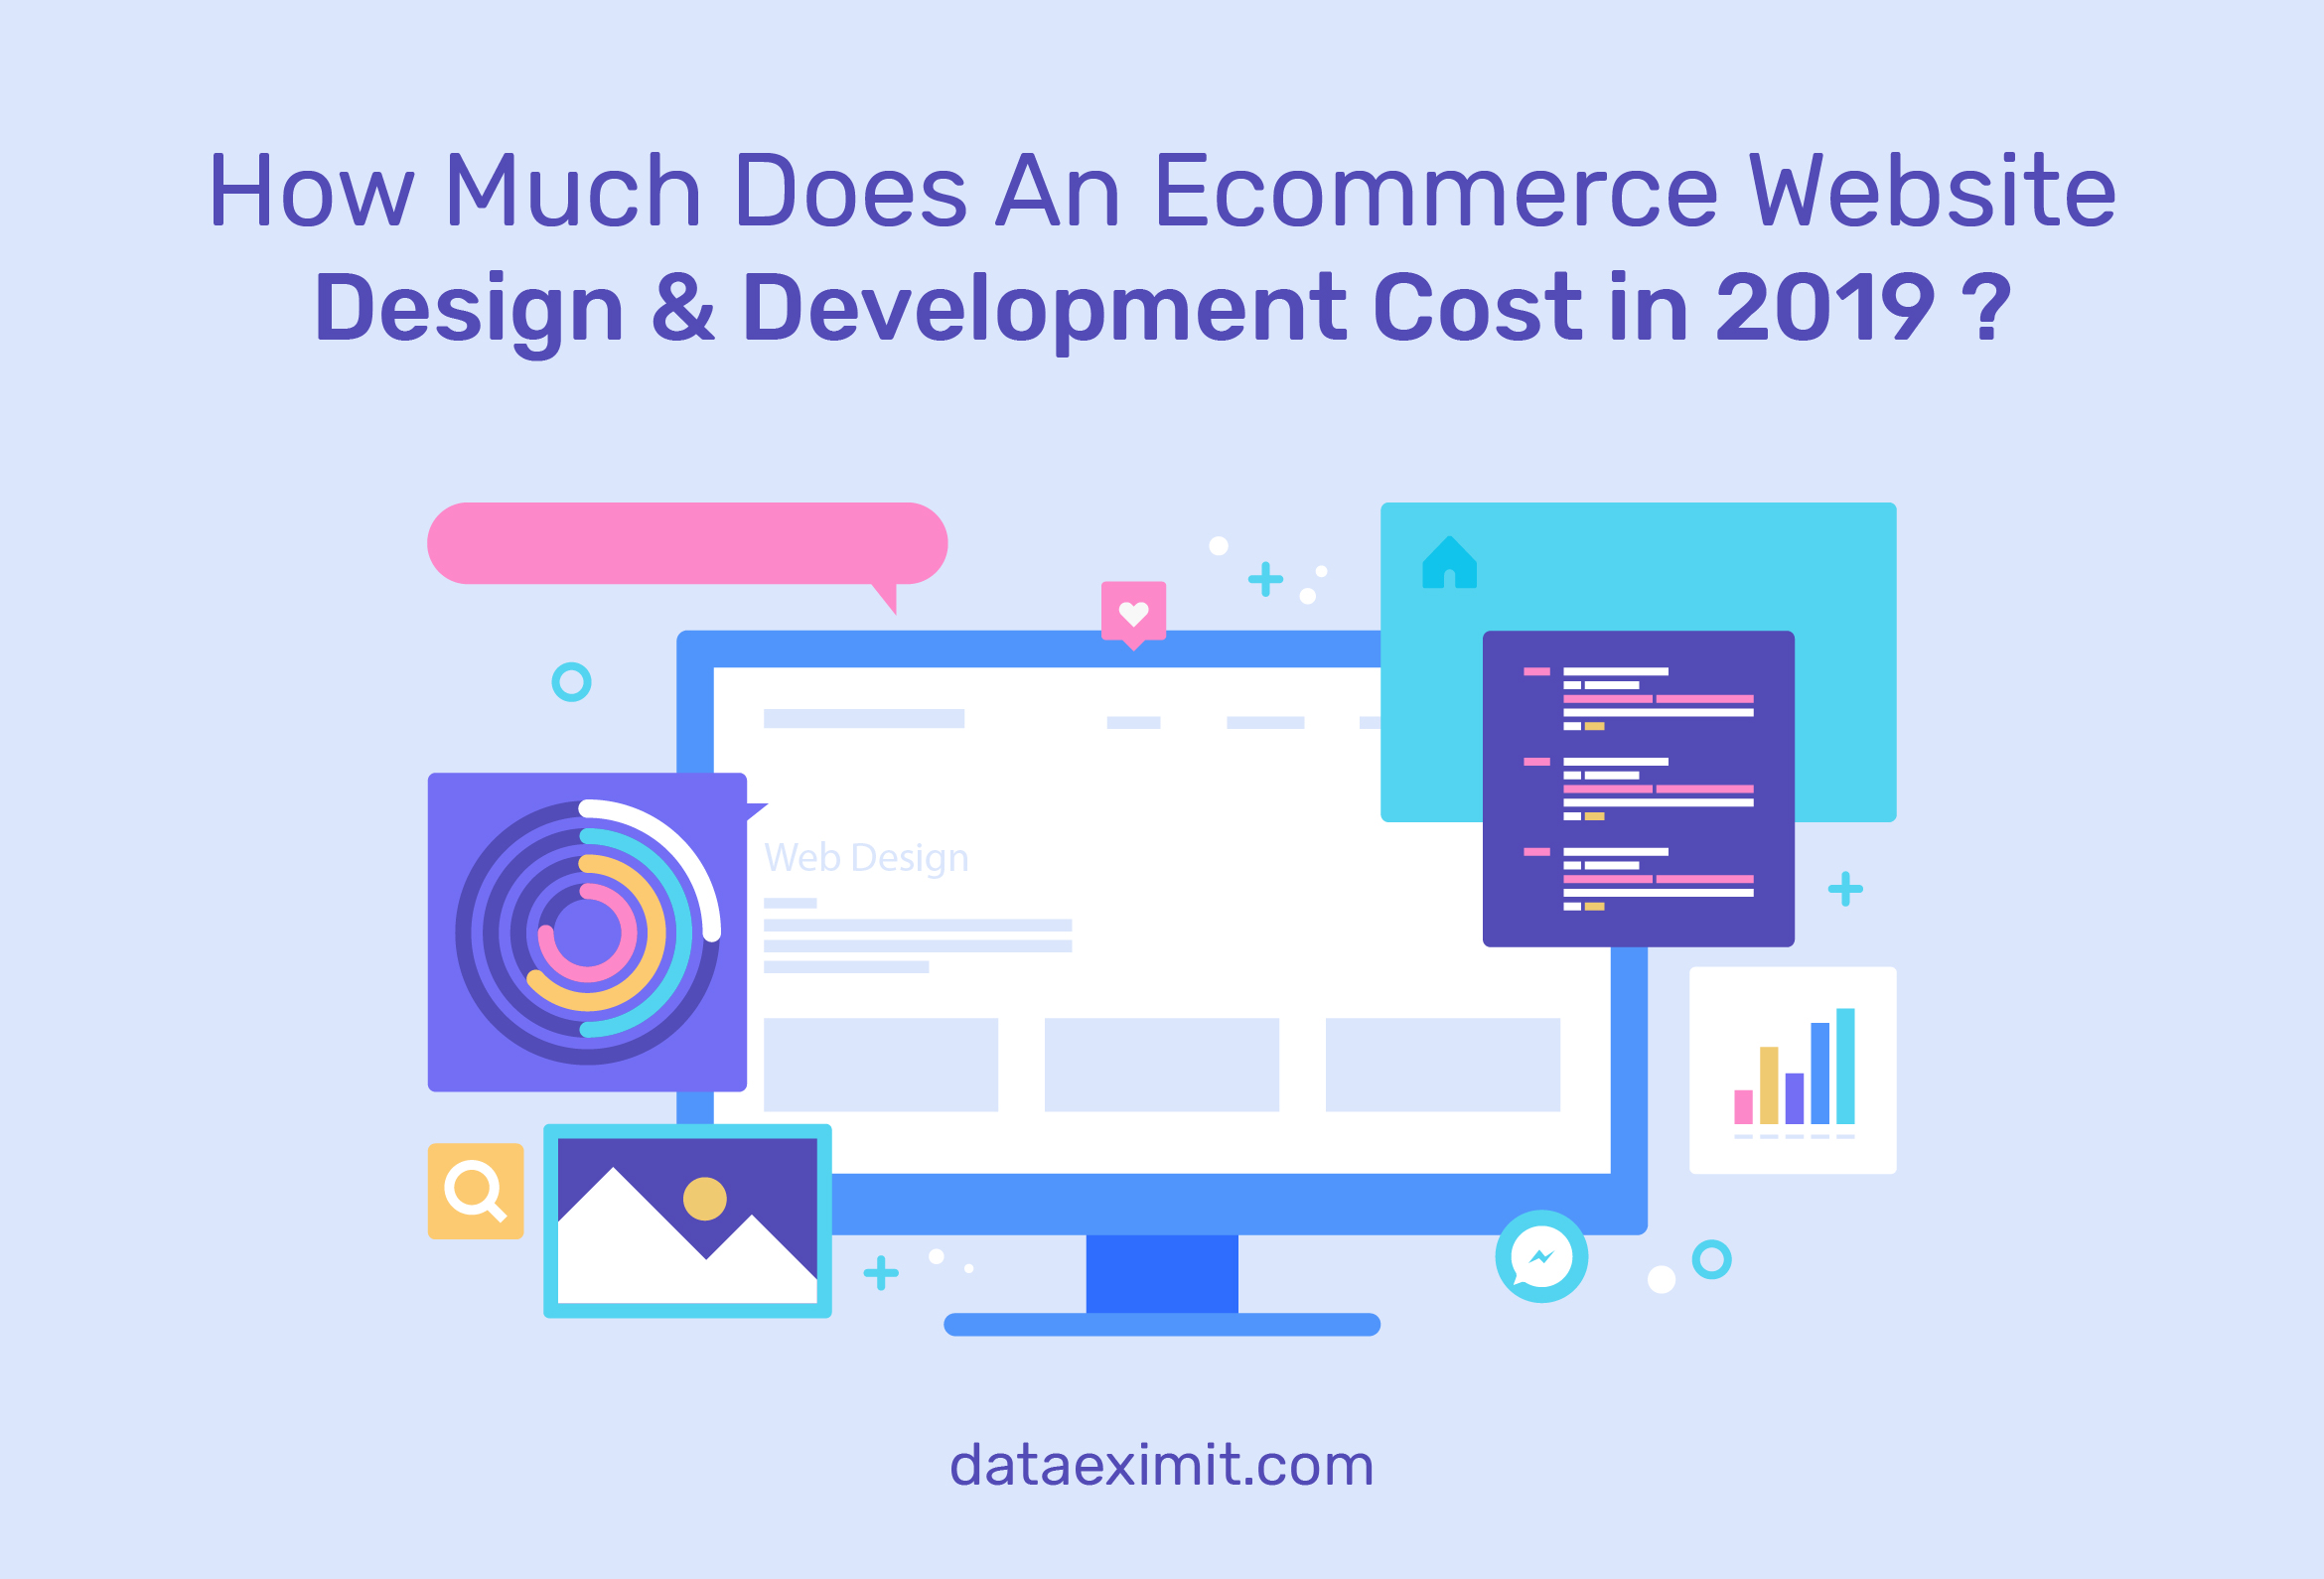 How Much Does An Ecommerce Website Development Cost in 2019?